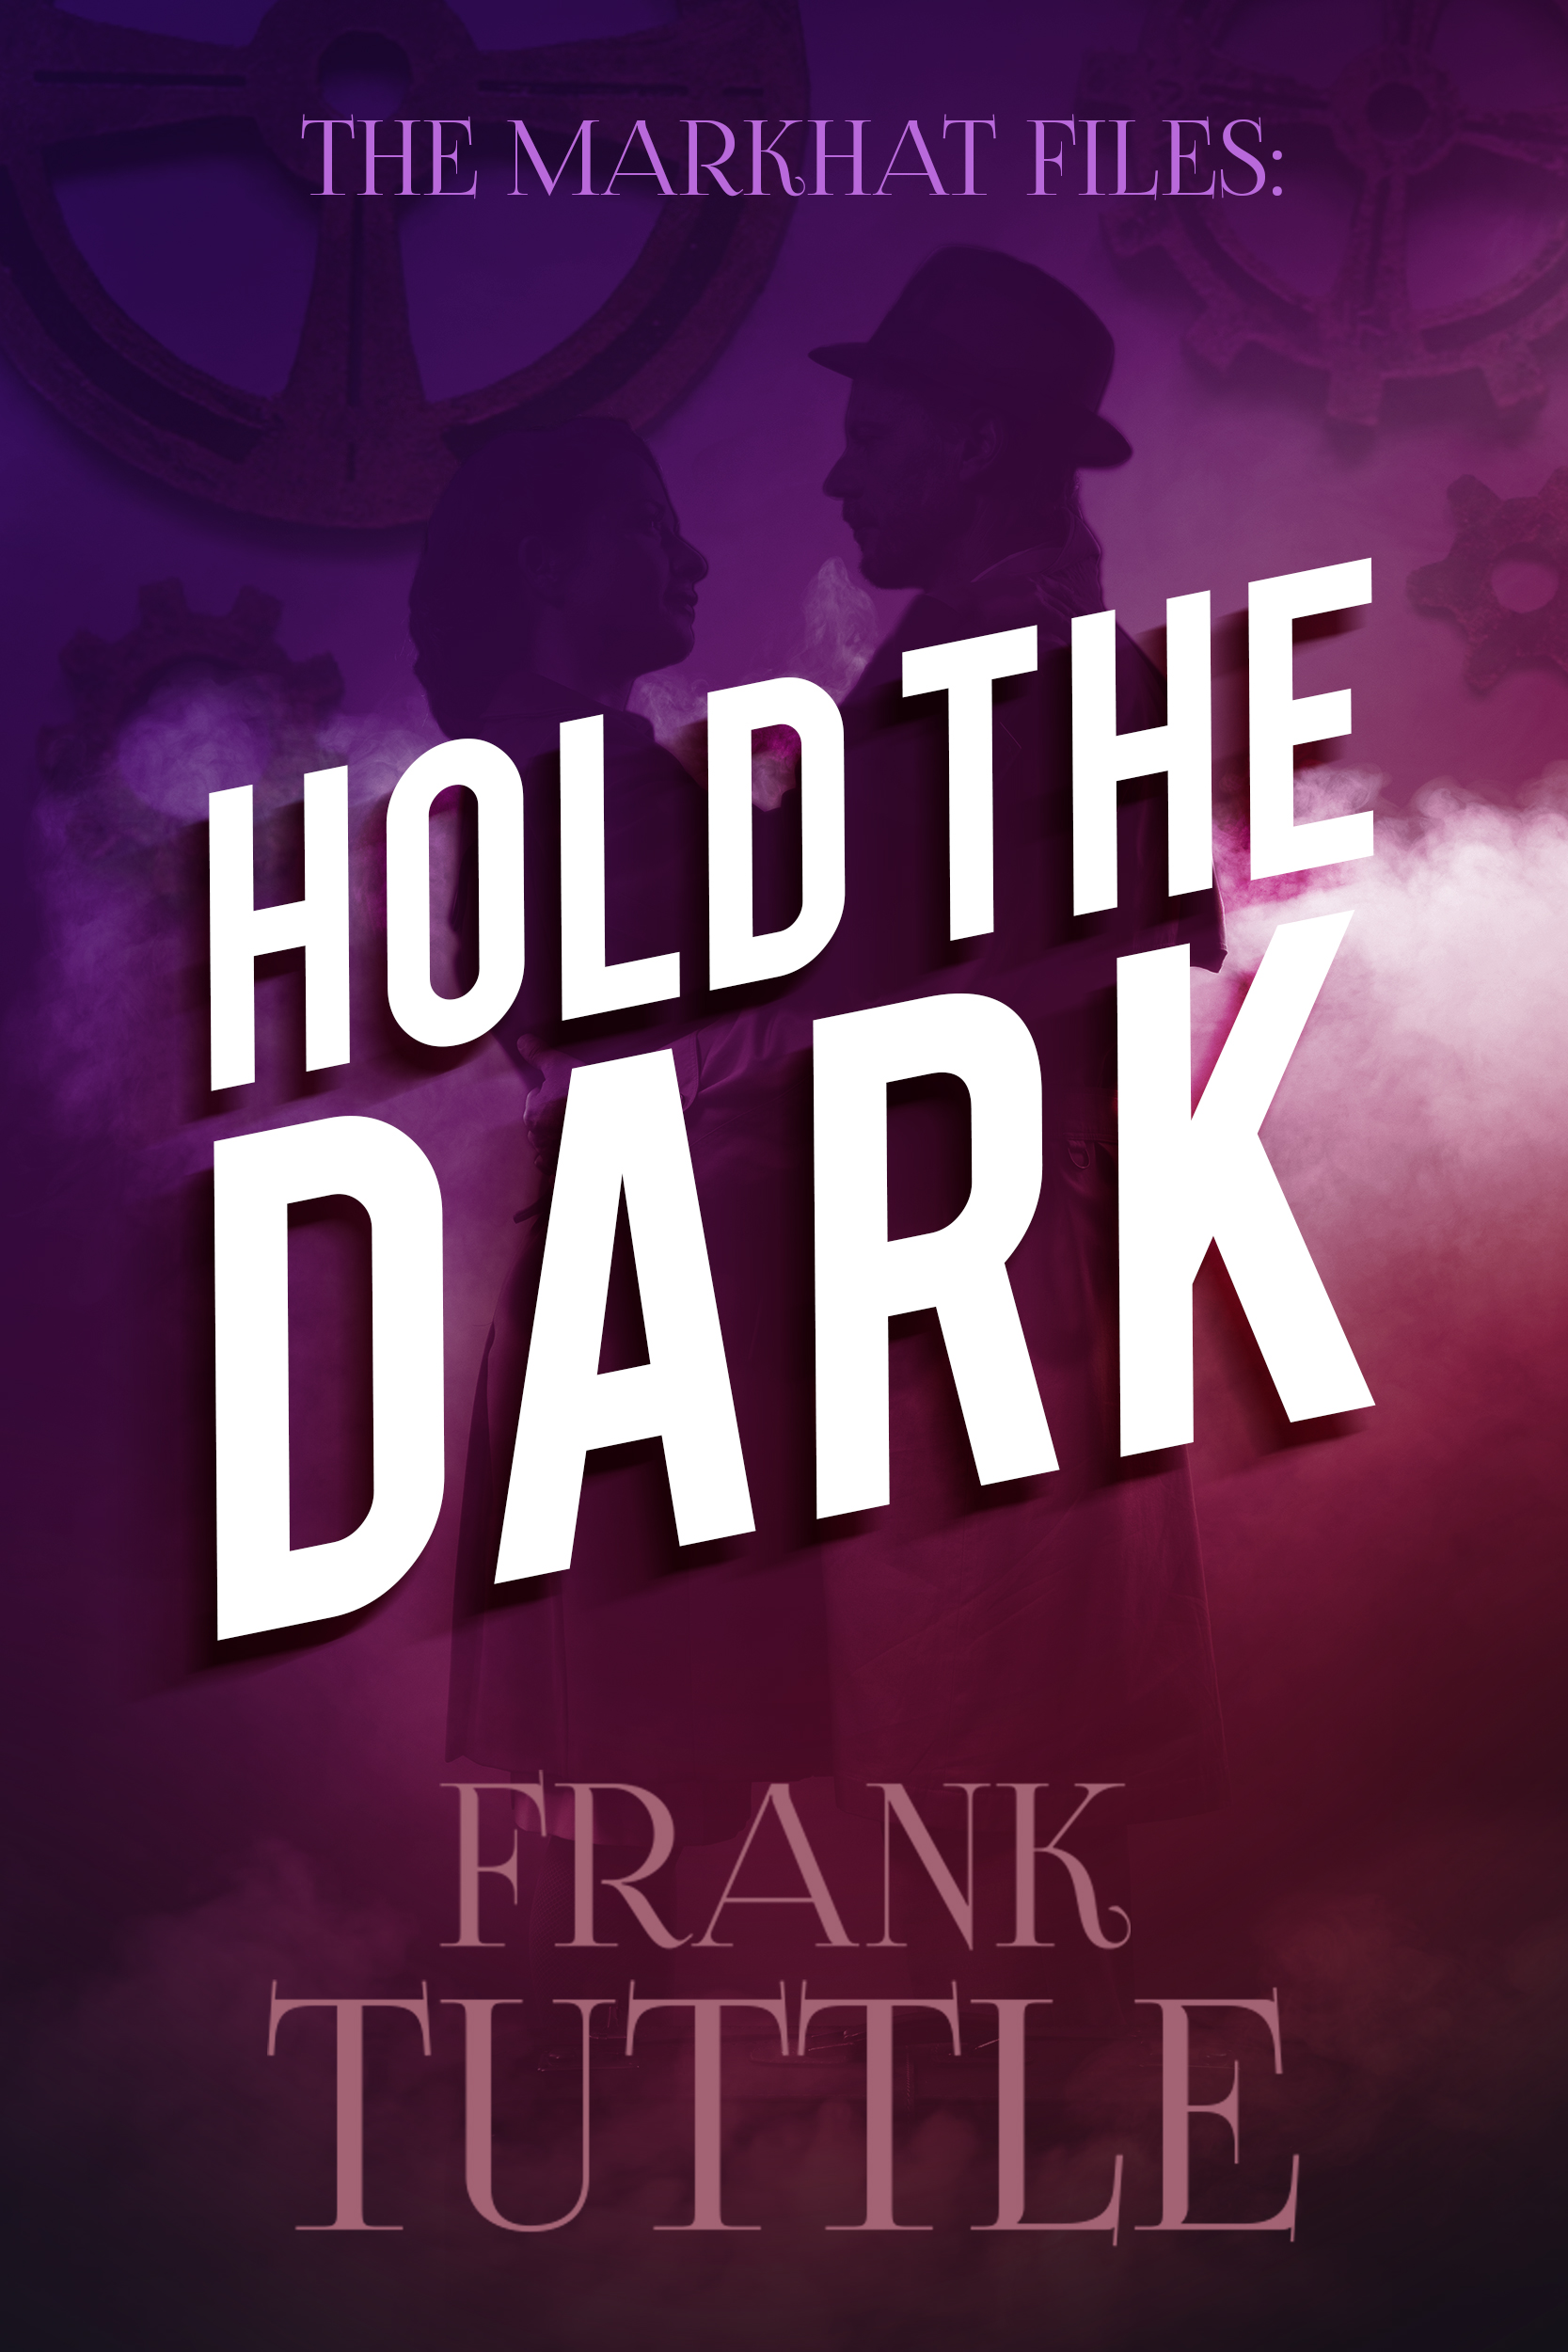 [FT-2017-002]-FT-Hold-the-Dark-E-Book-Cover_1667x2500.jpg